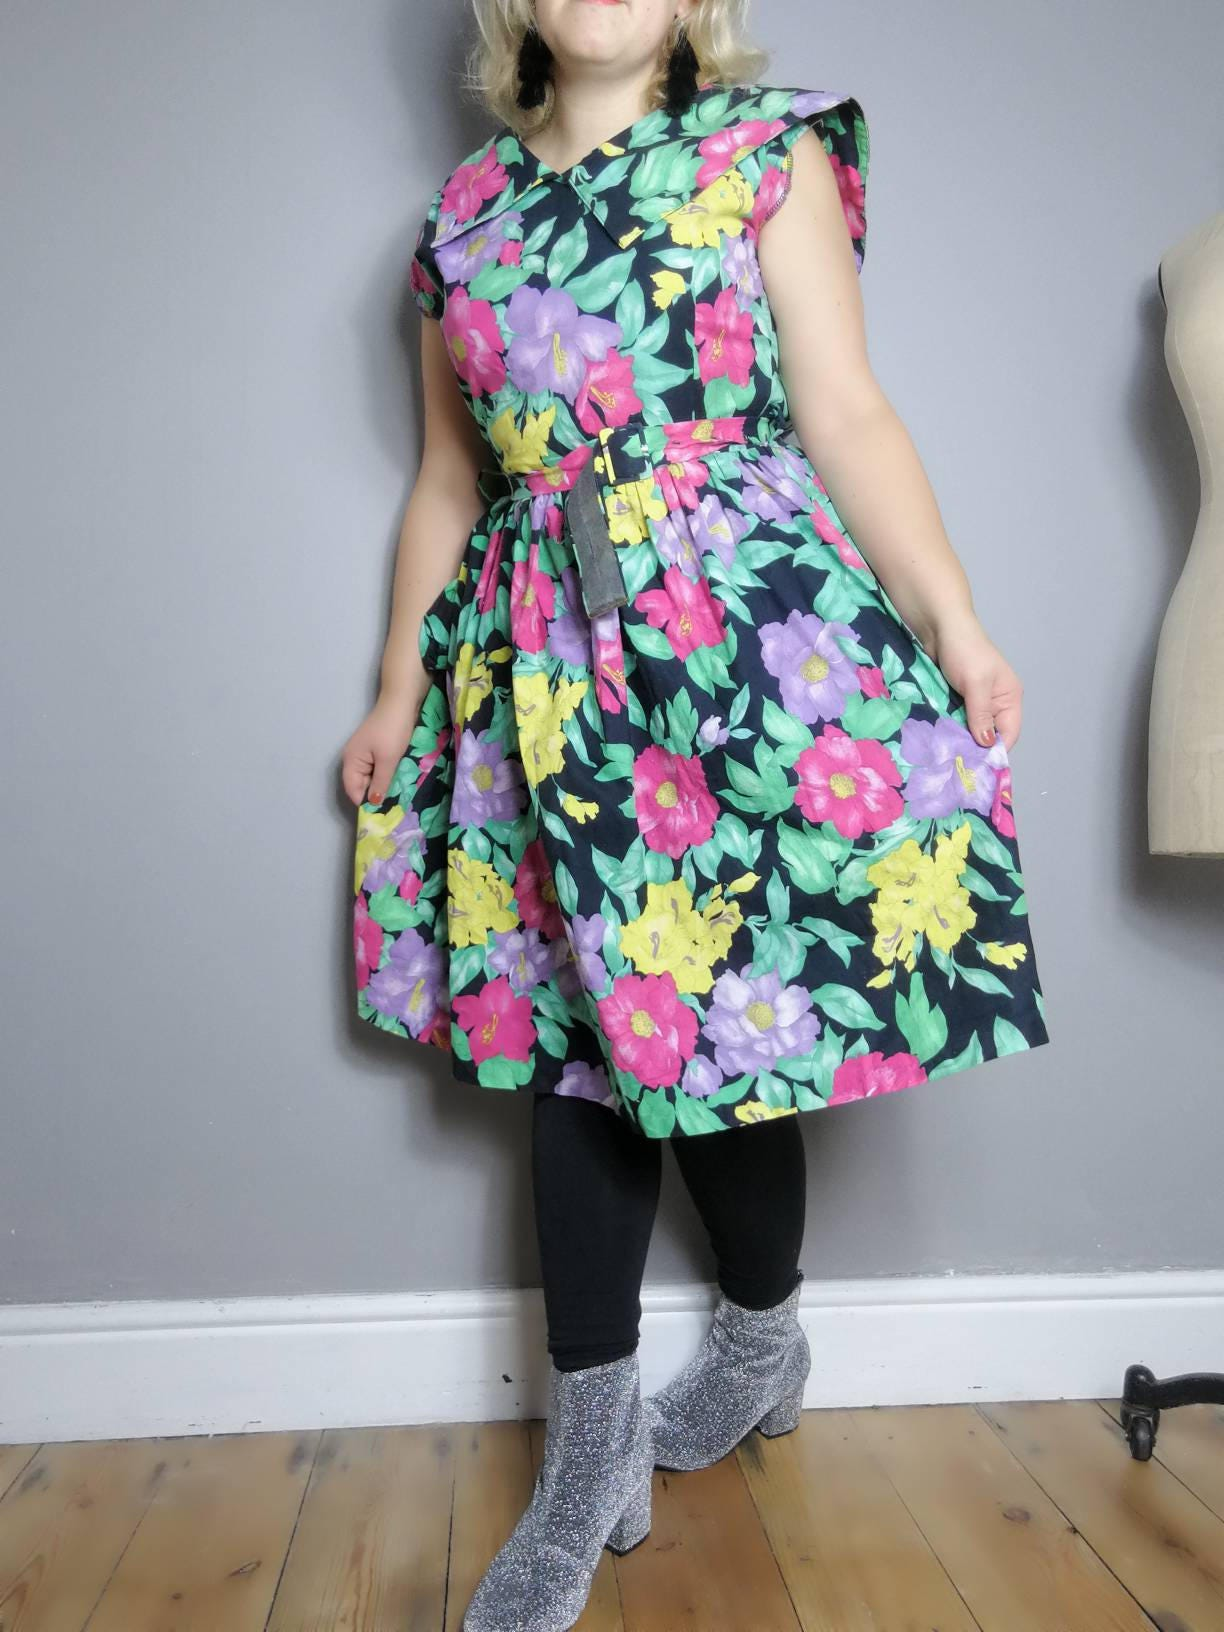 Contemporary Dressing For An 80s Party Composition - All Wedding ...